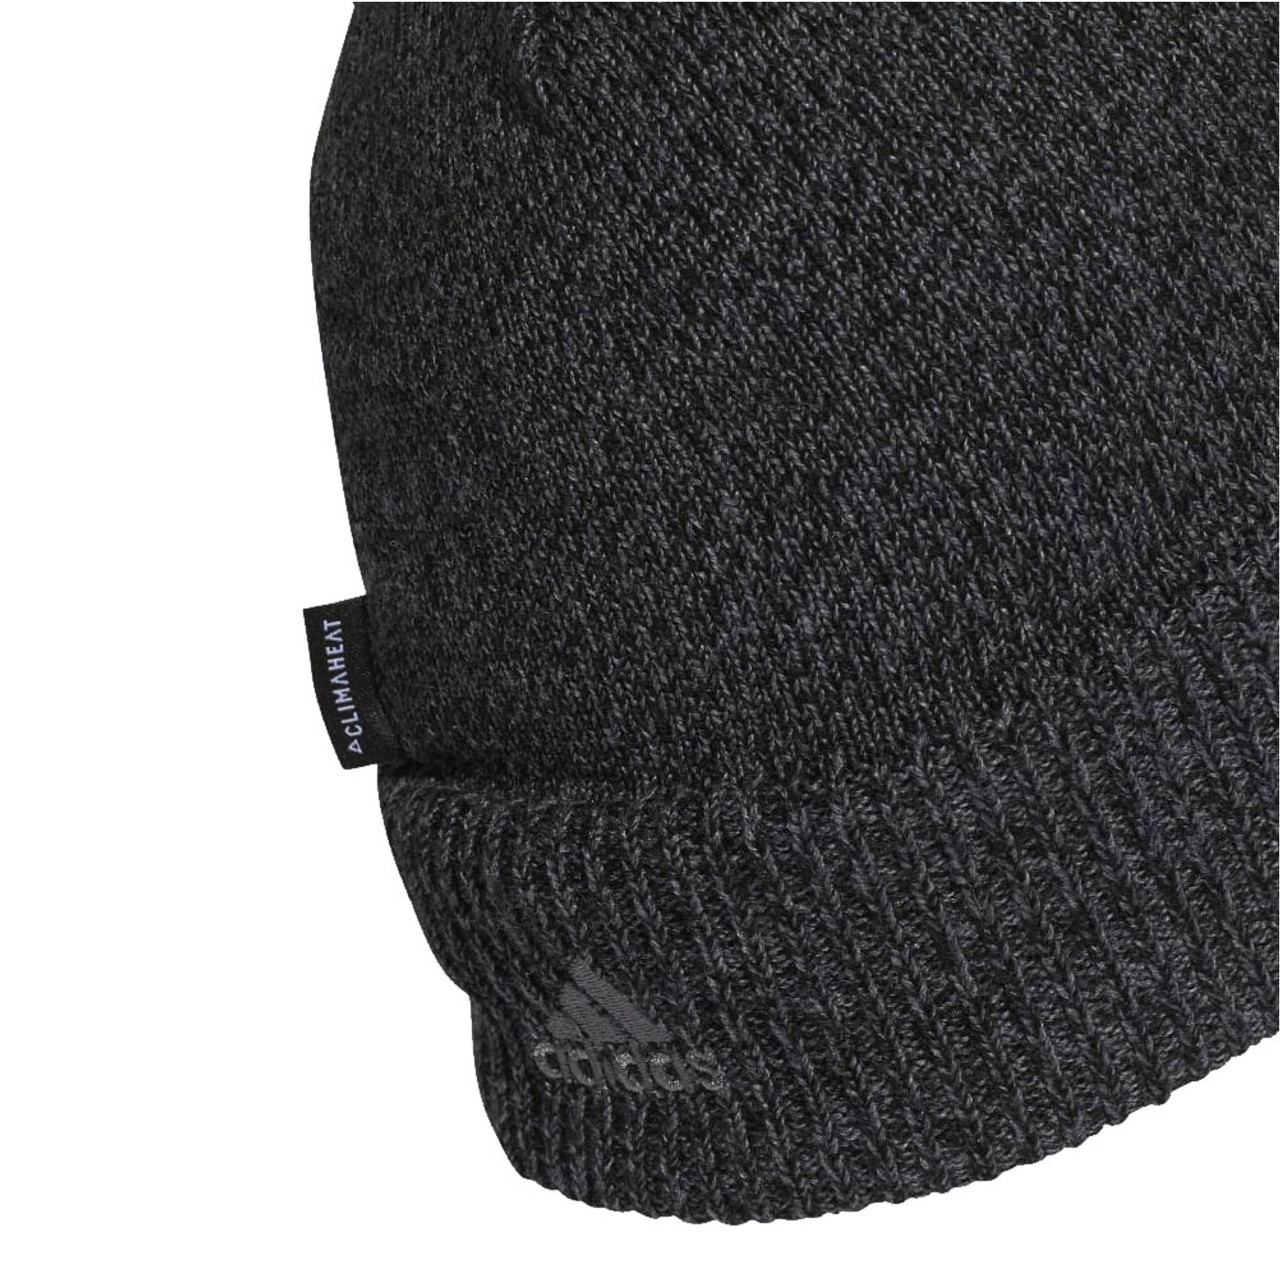 c0653672a90 ... ADIDAS New Zealand All Blacks Rugby Beanie  black grey